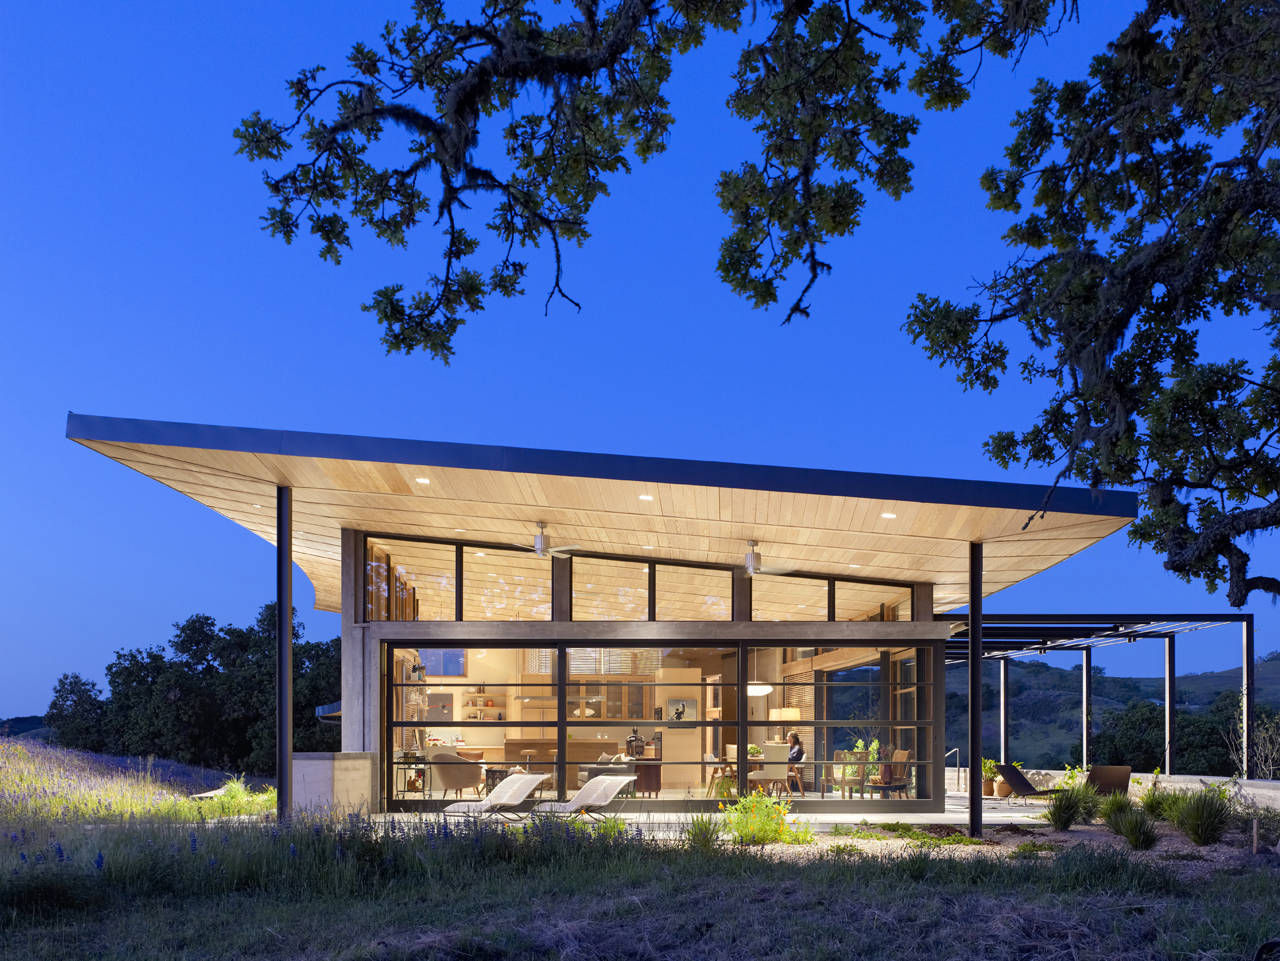 Caterpillar House In Carmel California By Feldman